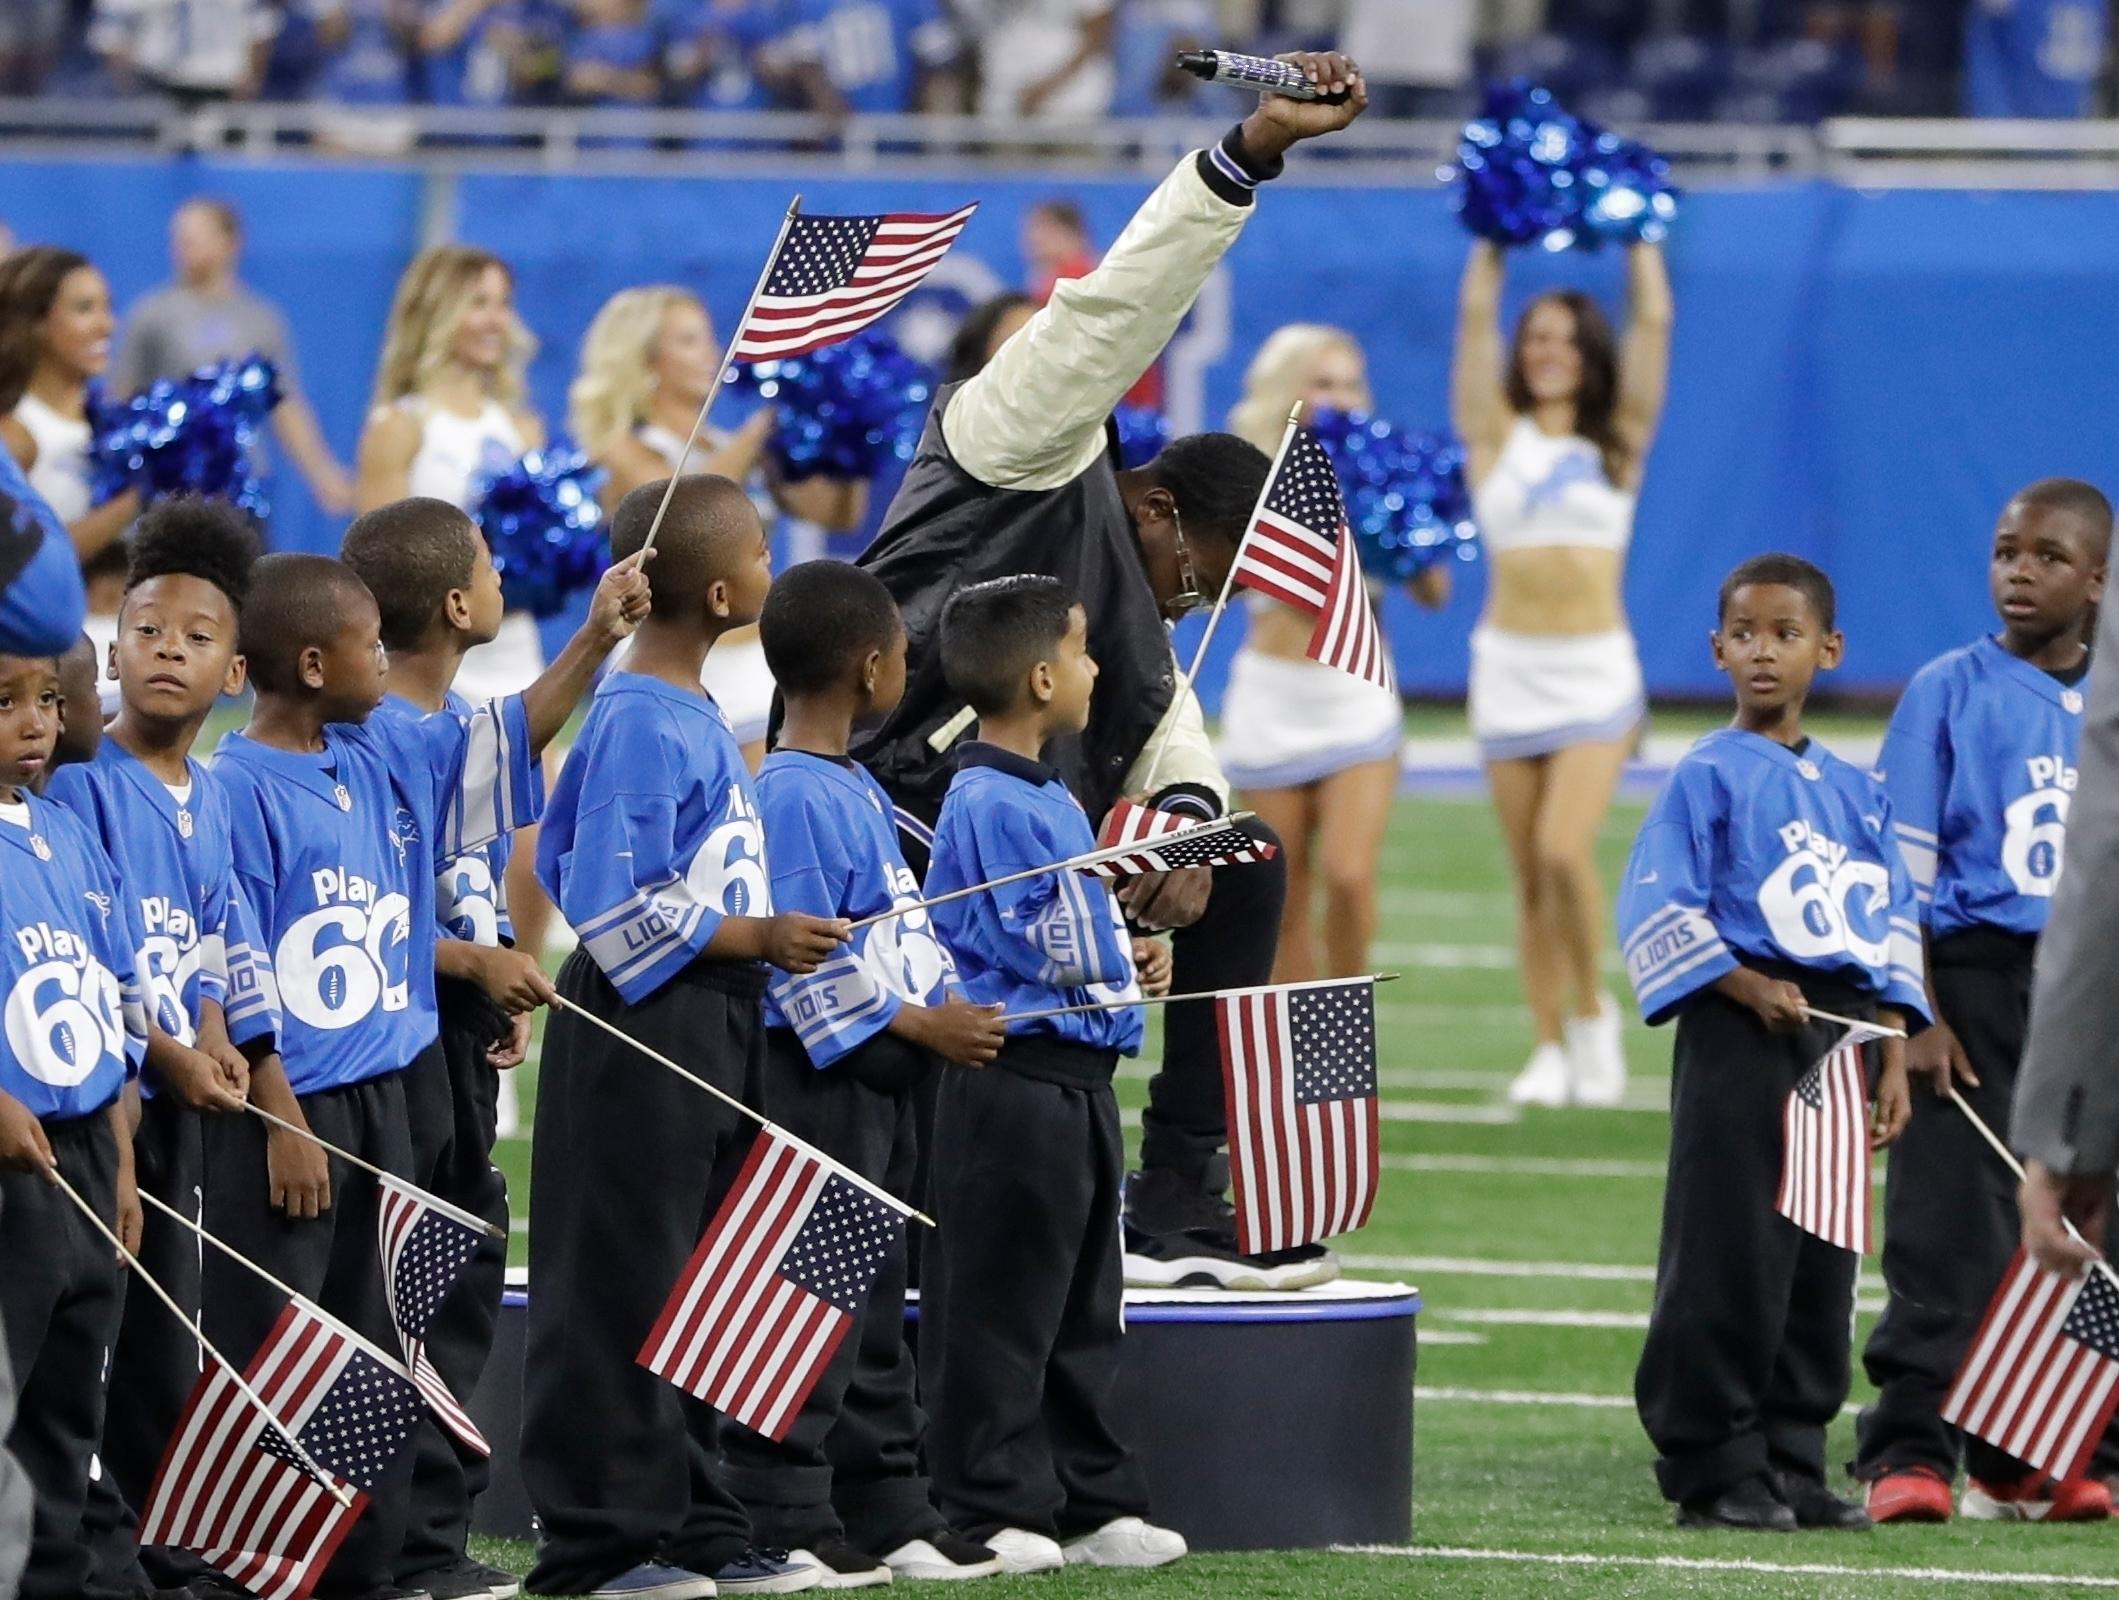 "FILE- In a file photo from Sept. 24, 2017, National anthem singer Rico Lavelle bends to his knee, bows his head and raises his fist after singing the anthem before the first half of an NFL football game between the Detroit Lions and the Atlanta Falcons in Detroit. The sight of football players kneeling during the national anthem is the continuation of a tradition nearly as old the song itself. University of Michigan musicology professor Mark Clague says ""The Star-Spangled Banner"" has been a channel for protest since at least the 1840s. The lyrics were recast as an anti-slavery song and it's been used or reworked to push for racial equality, women's suffrage, prohibition and labor rights. (AP Photo/Carlos Osorio, File)"